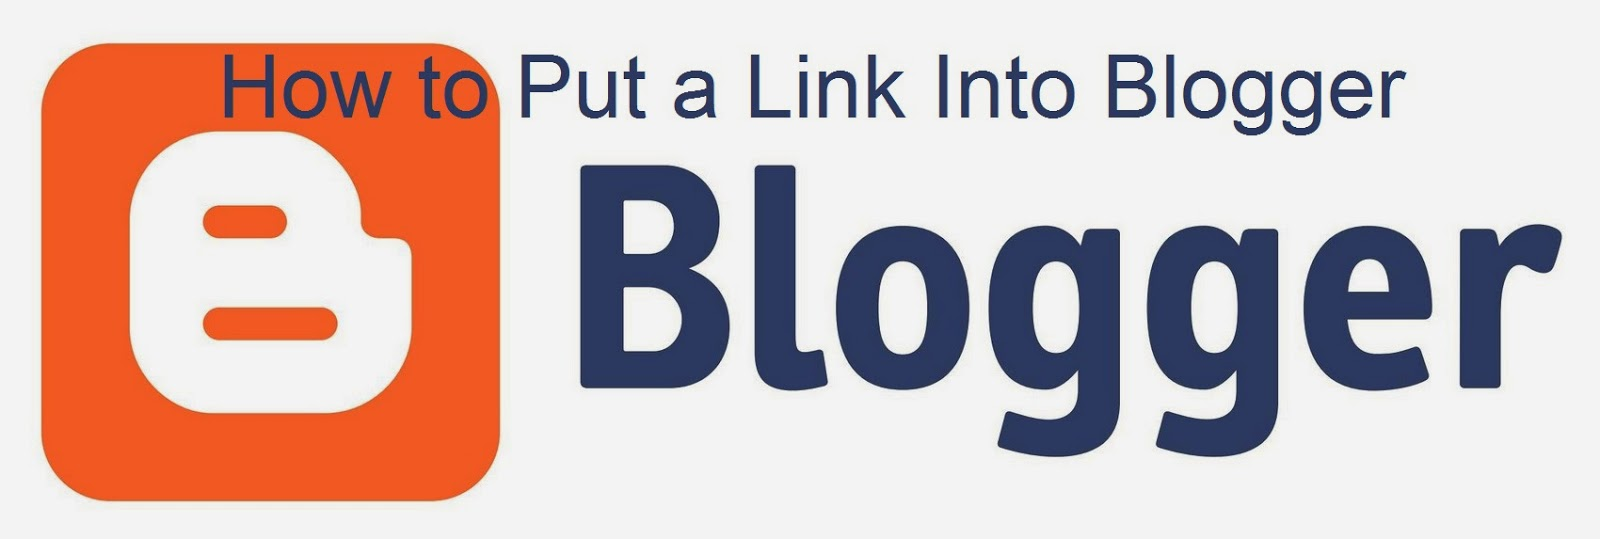 How to Put a Link Into Blogger : eAskme